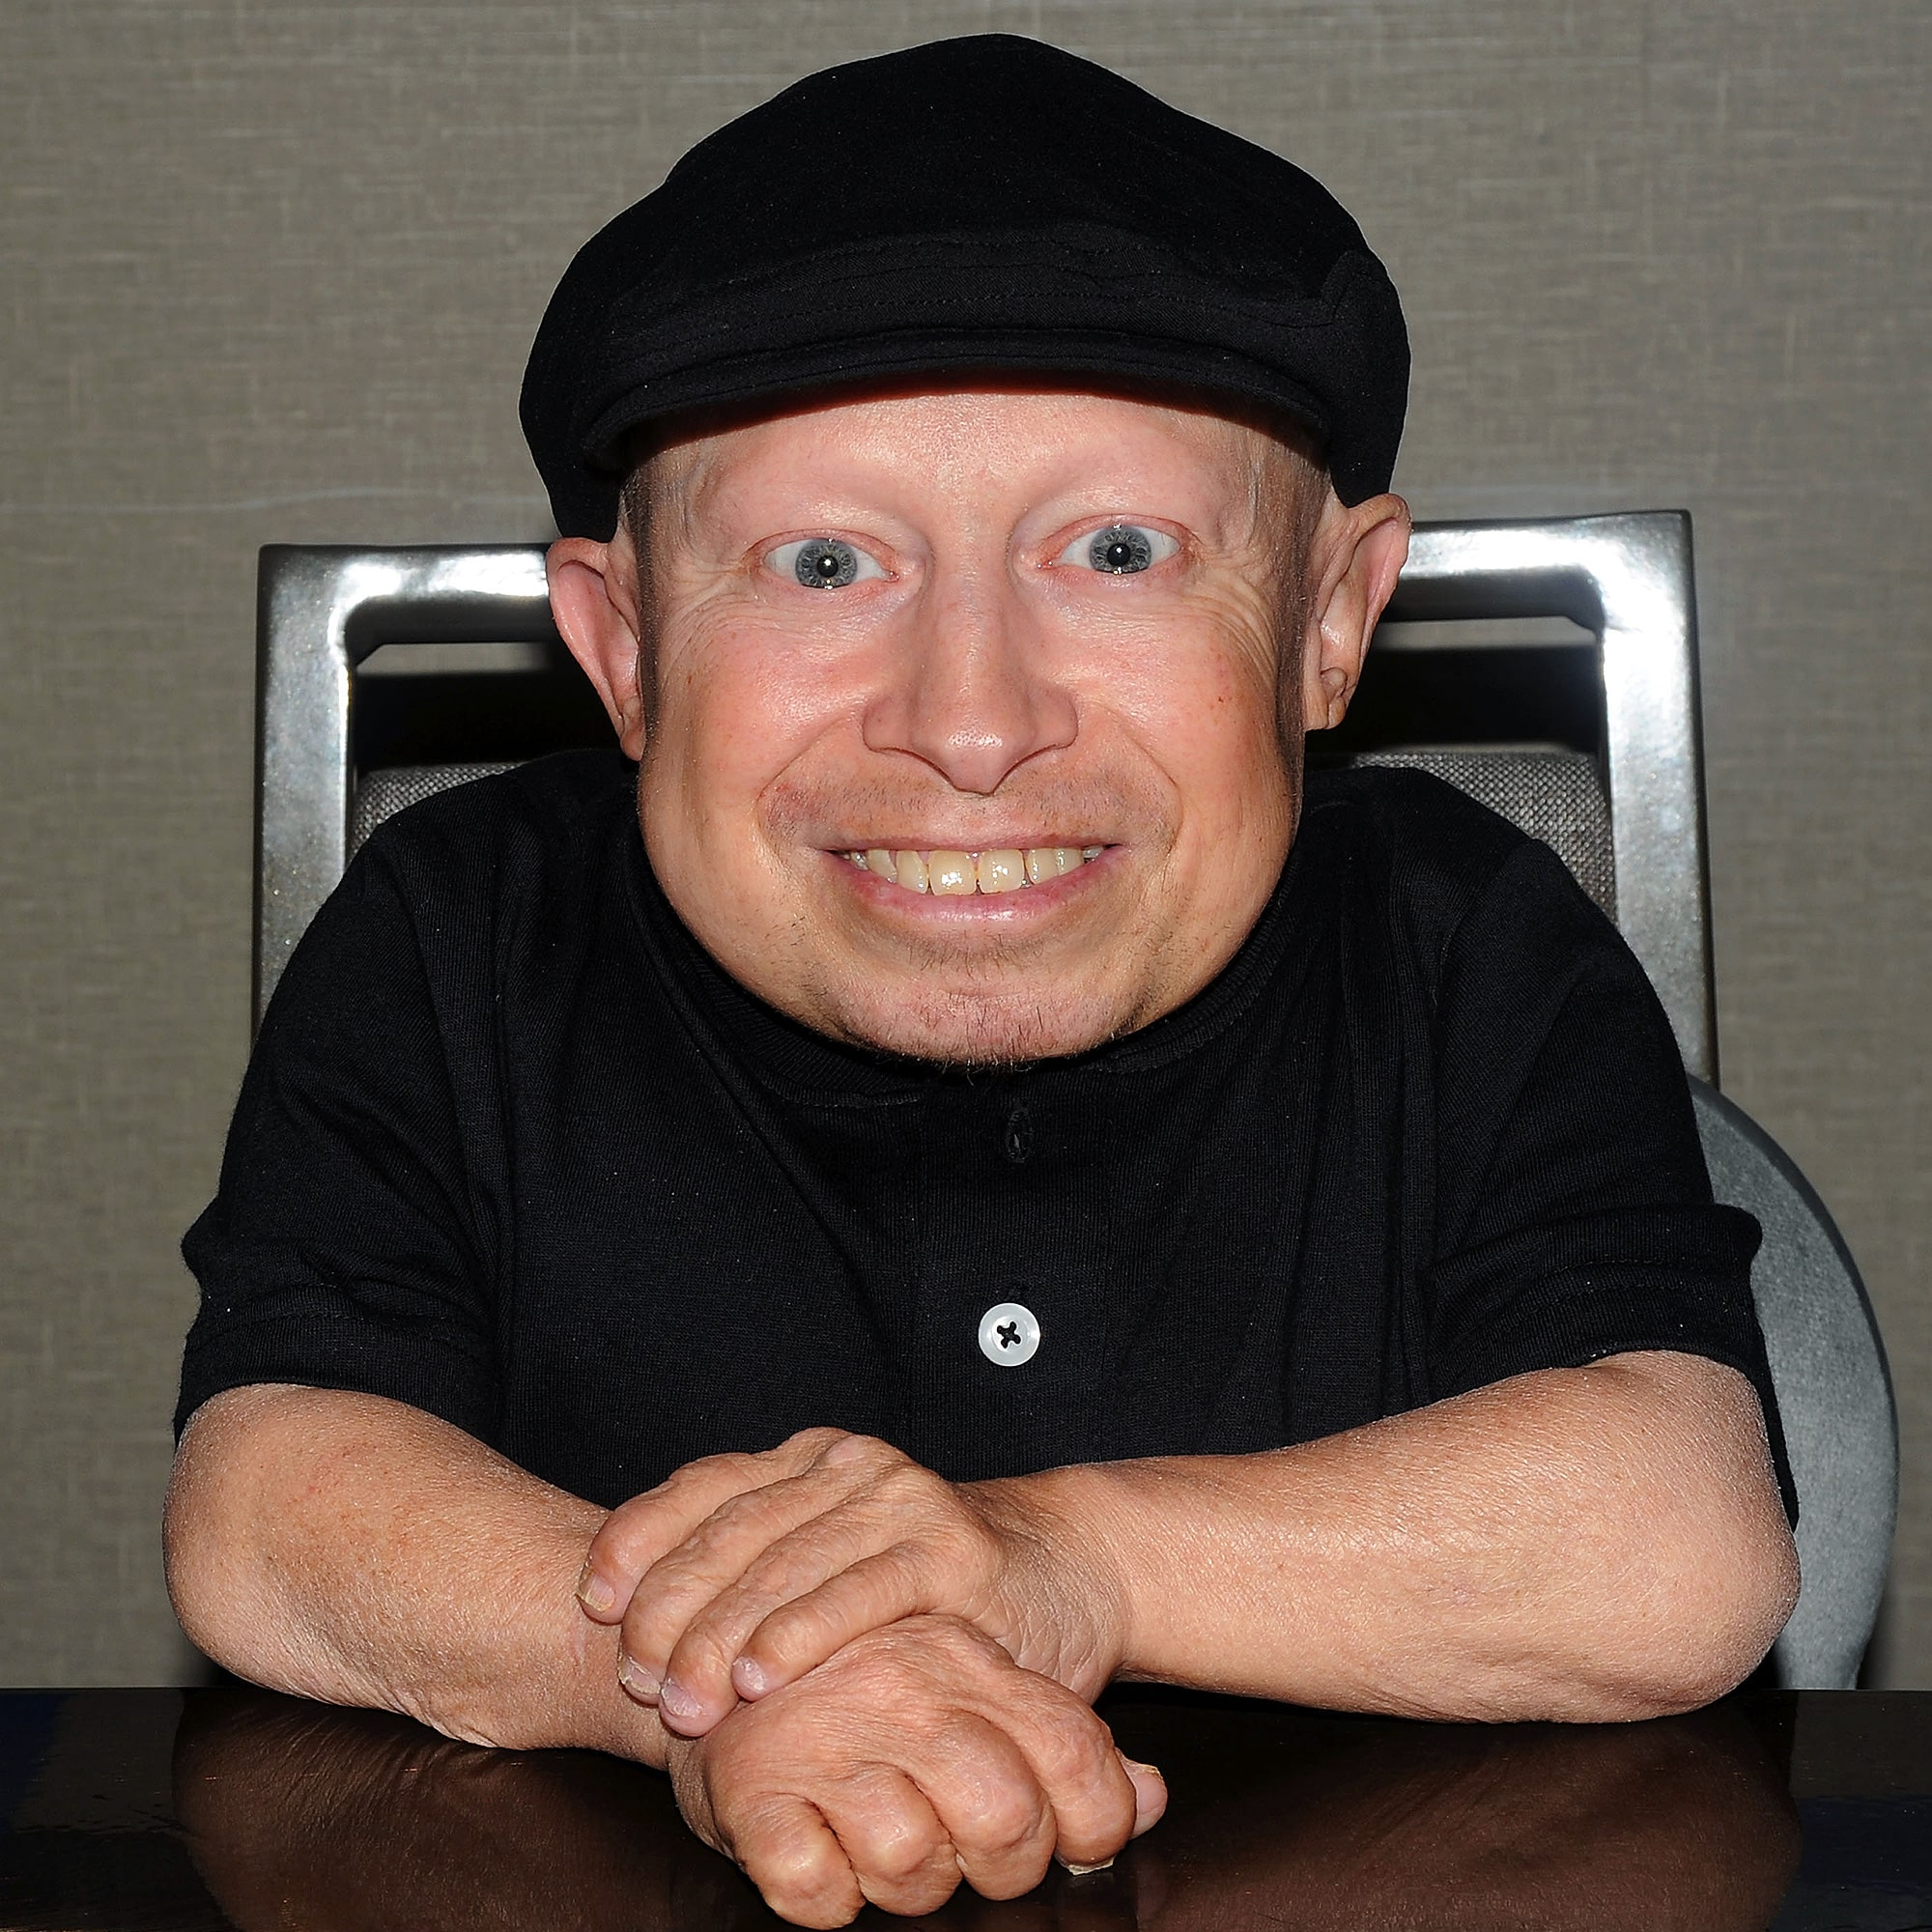 Mini-Me Austin Powers actor Verne Troyer dies aged 49